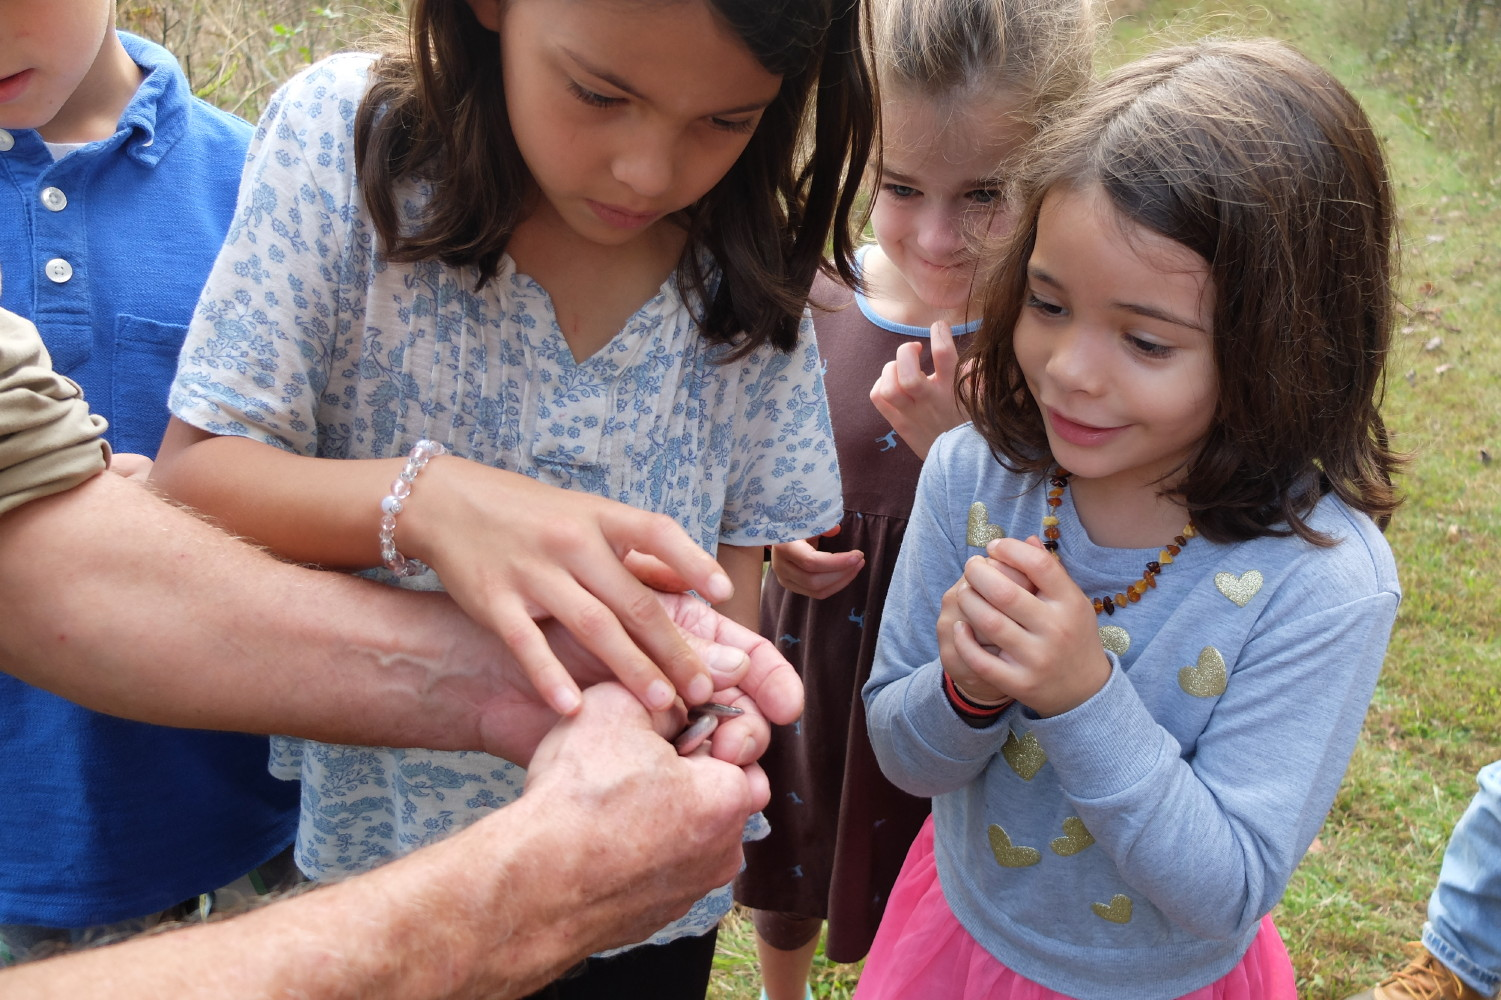 Worm snake and little girls